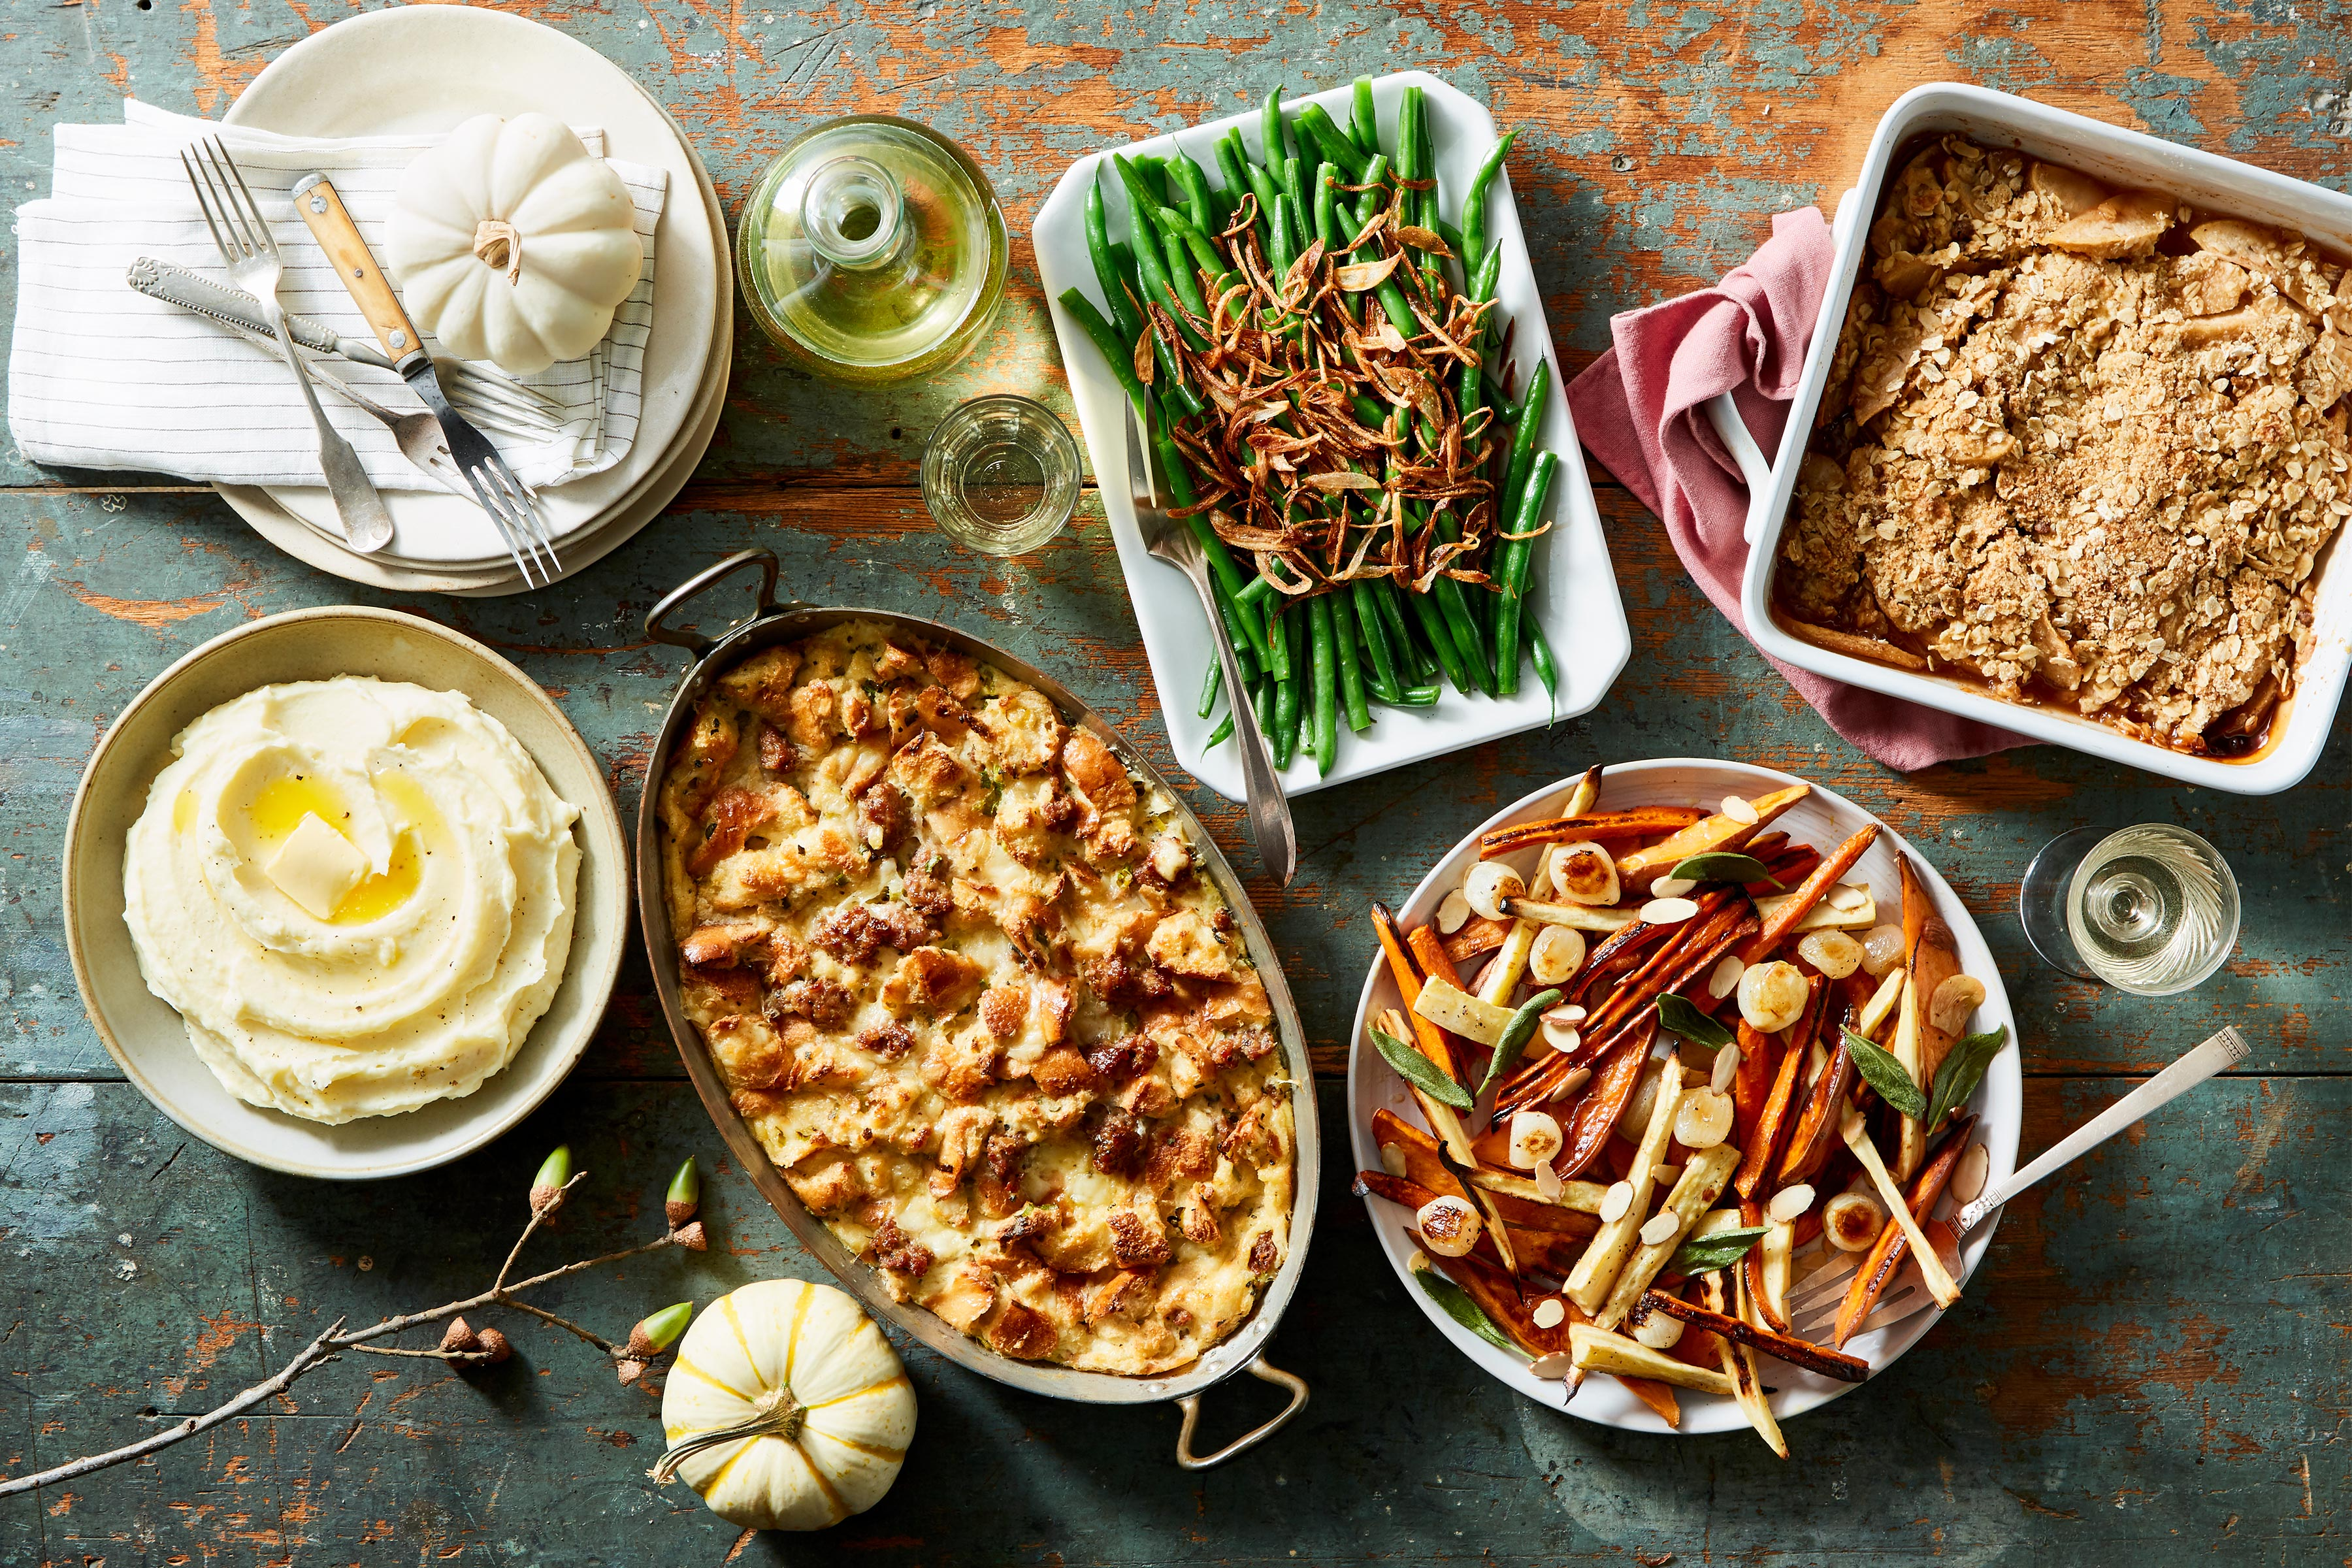 Martha Stewart Thanksgiving recipes including mashed potatoes, green beans, stuffing, and apple crisp